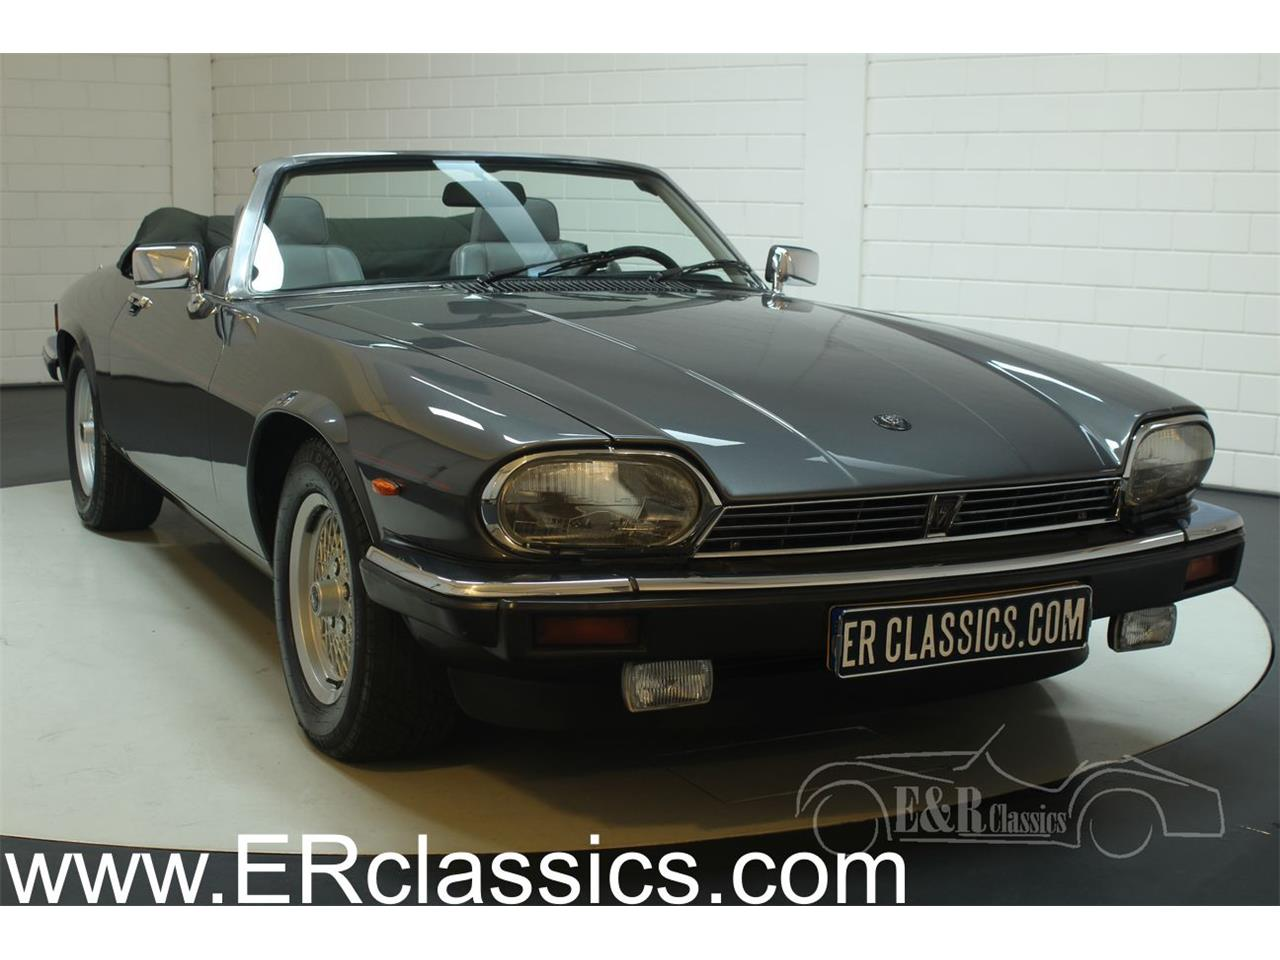 Large Picture of '88 Jaguar XJS located in - Keine Angabe - - PGSZ